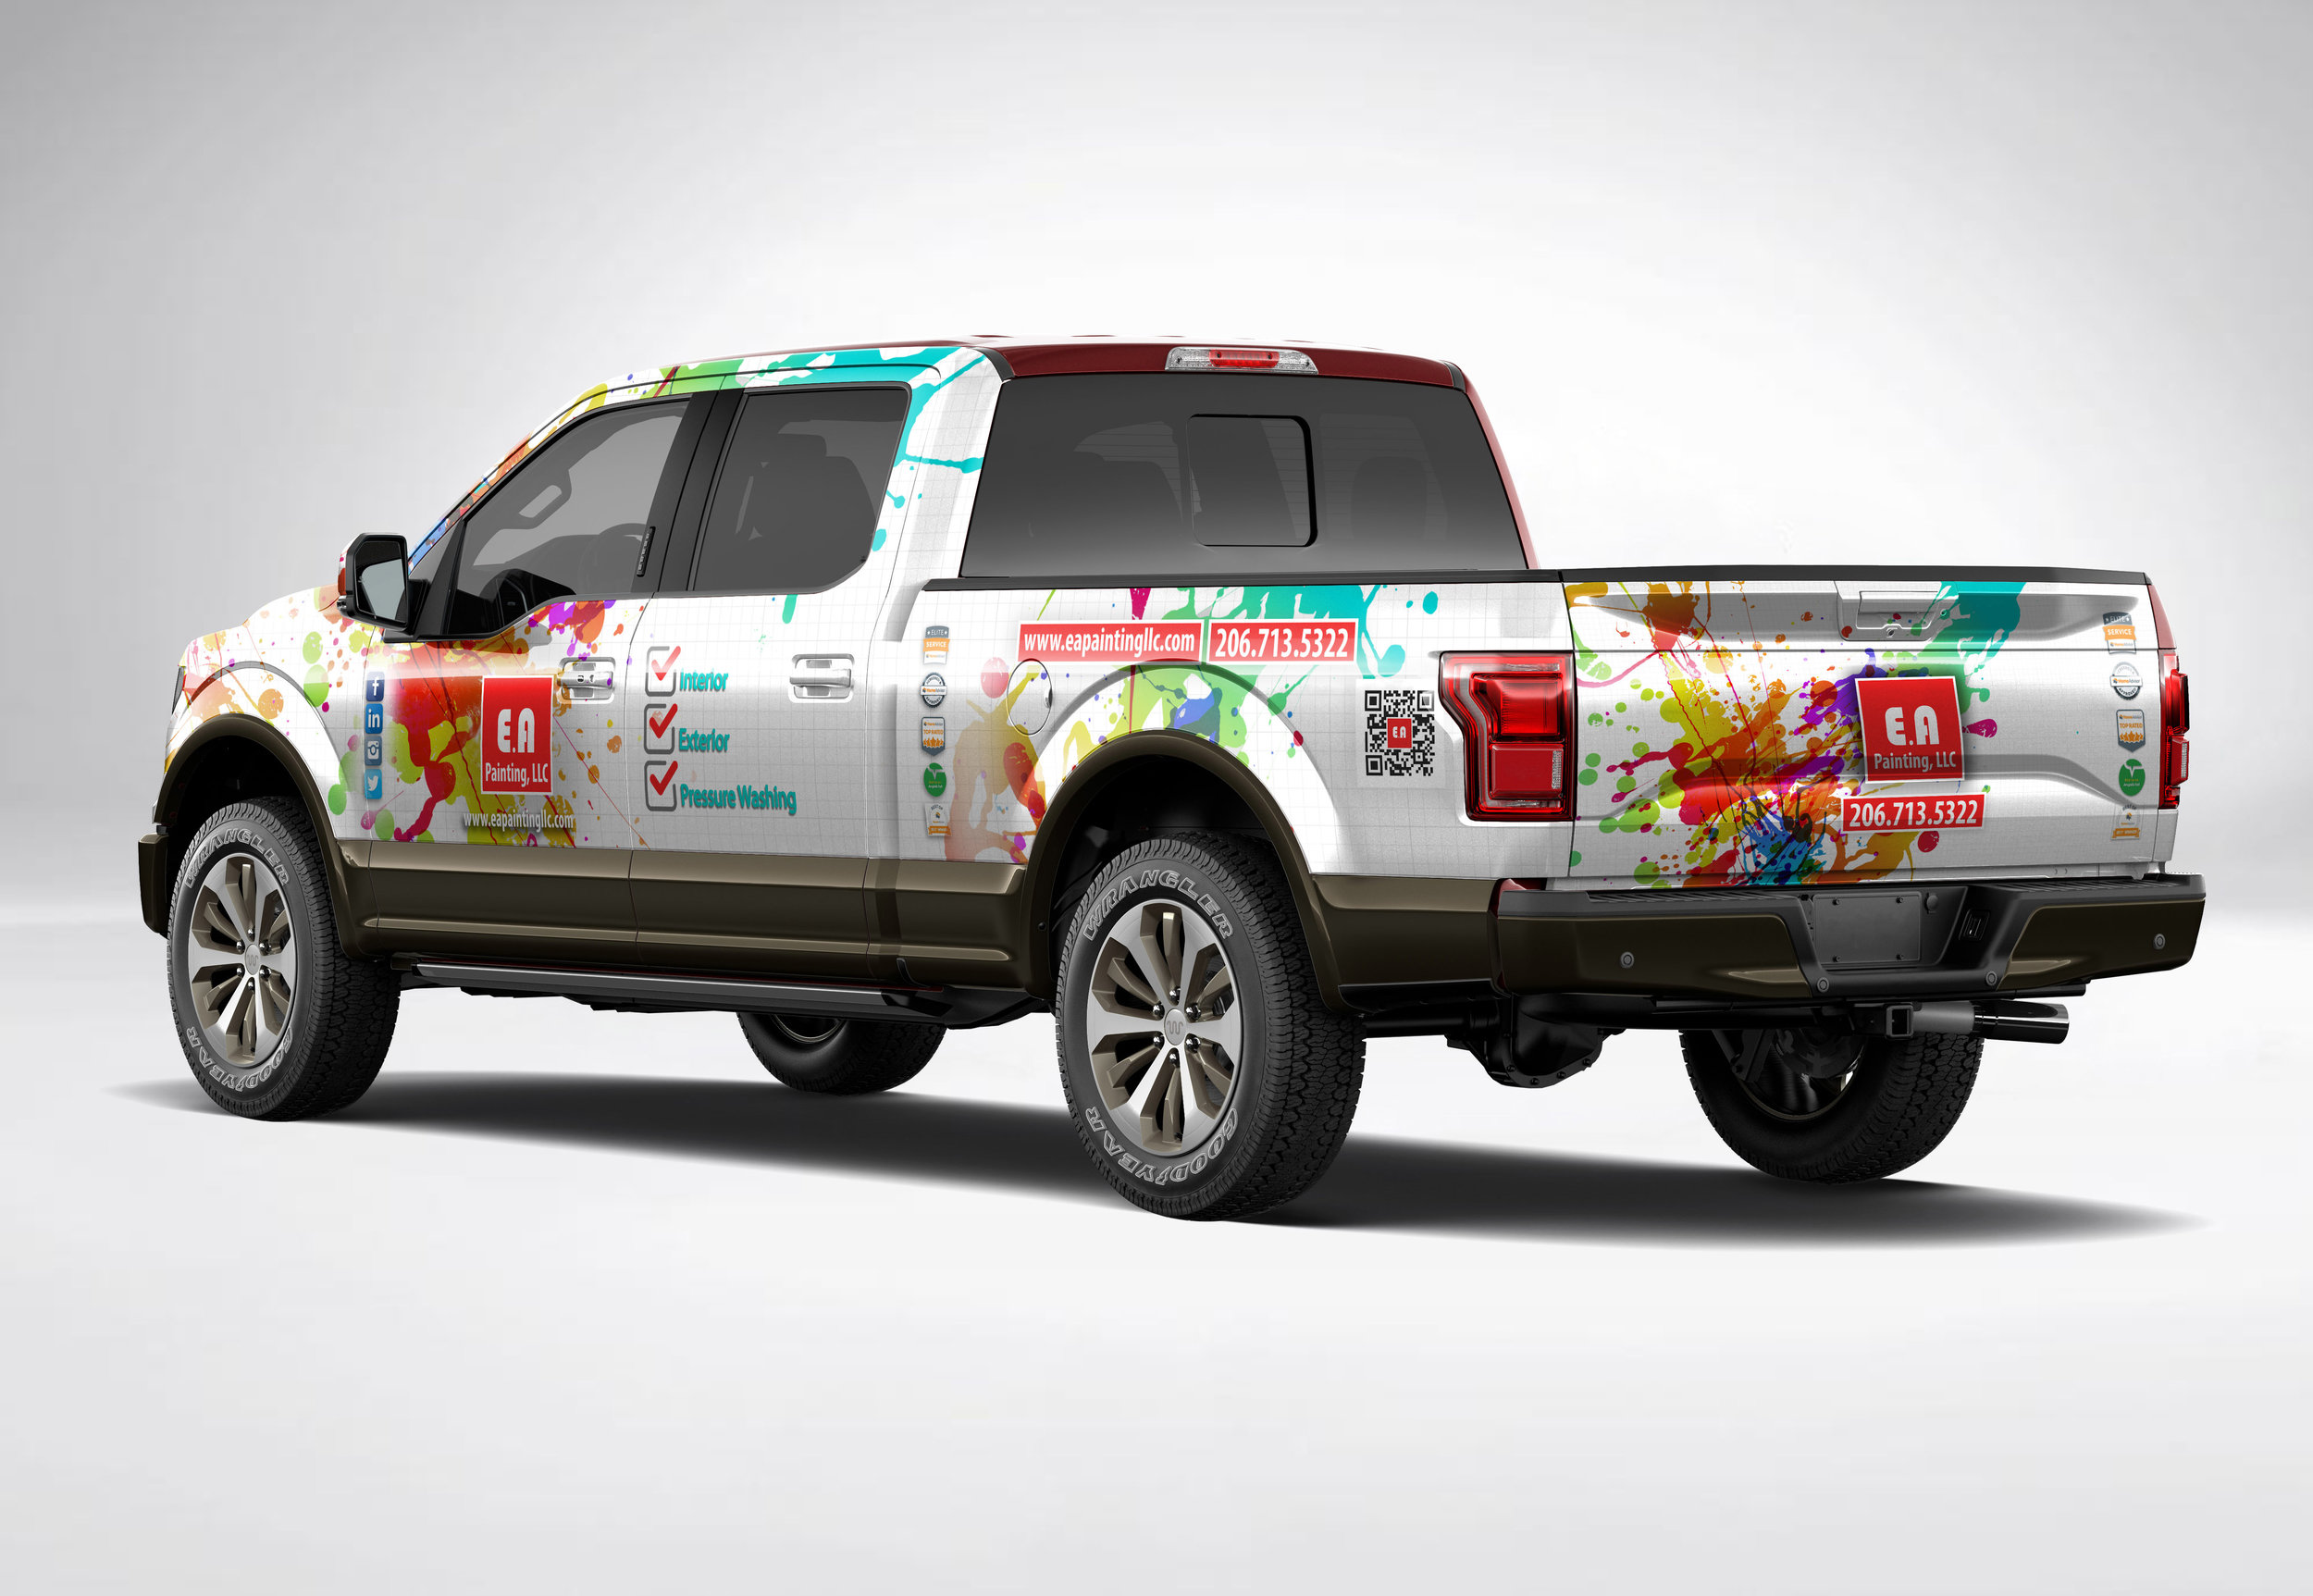 Final White Truck Design_back_side - Copy.jpg